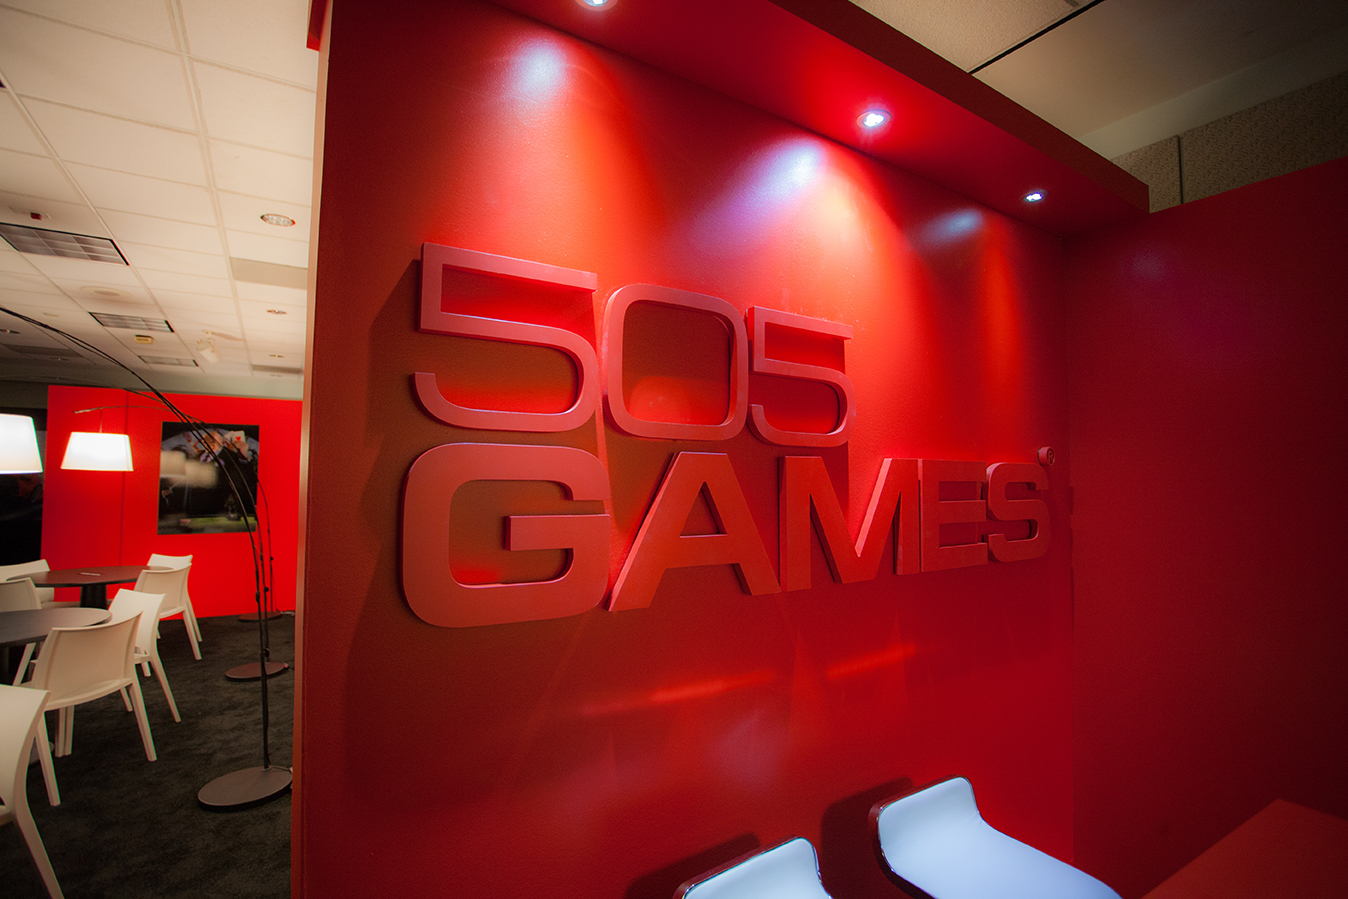 505 GAMES MEETING ROOM